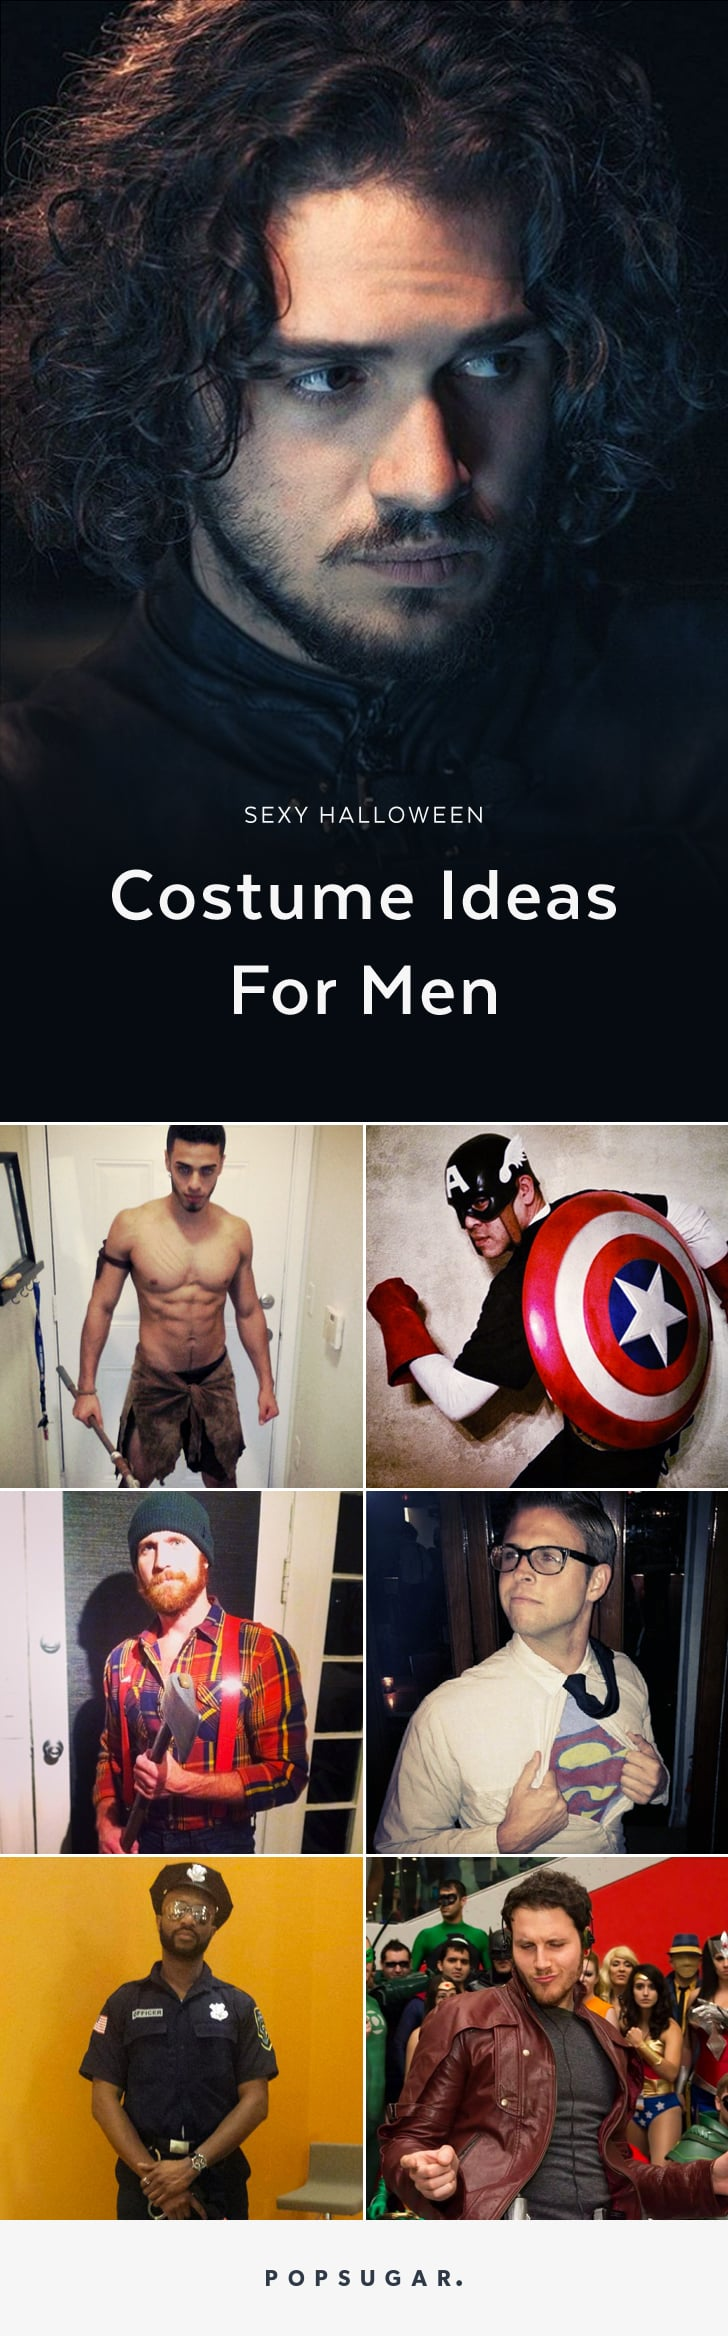 Halloween Looks For Guys.Hot Halloween Costume Ideas For Guys Popsugar Love Sex